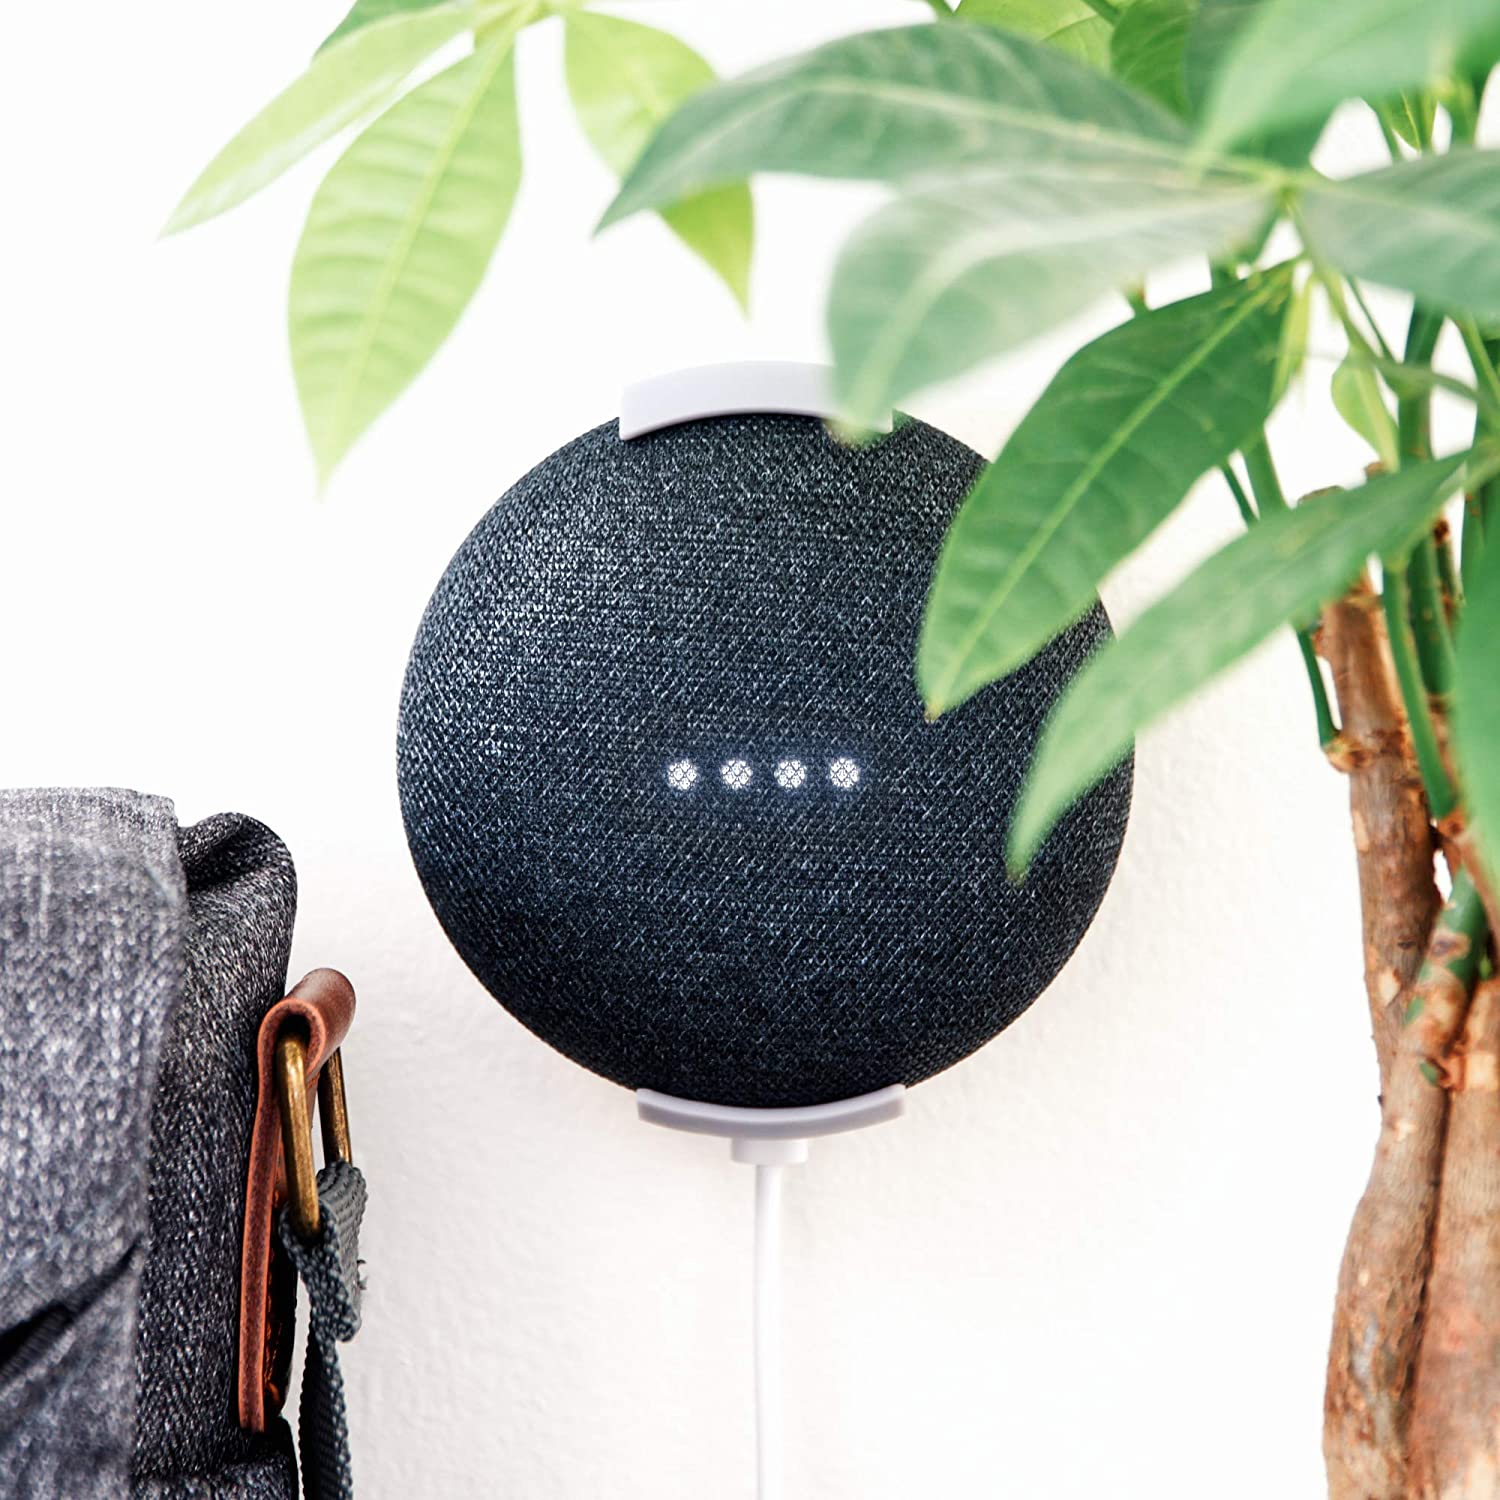 Strong Grip Google Home Mini Wall & Ceiling Mount, Damage Free, Screwless & Sturdy. 100% Designed & Made in The USA, Fits gen 1 Google Home & gen 2 nest Mini.…